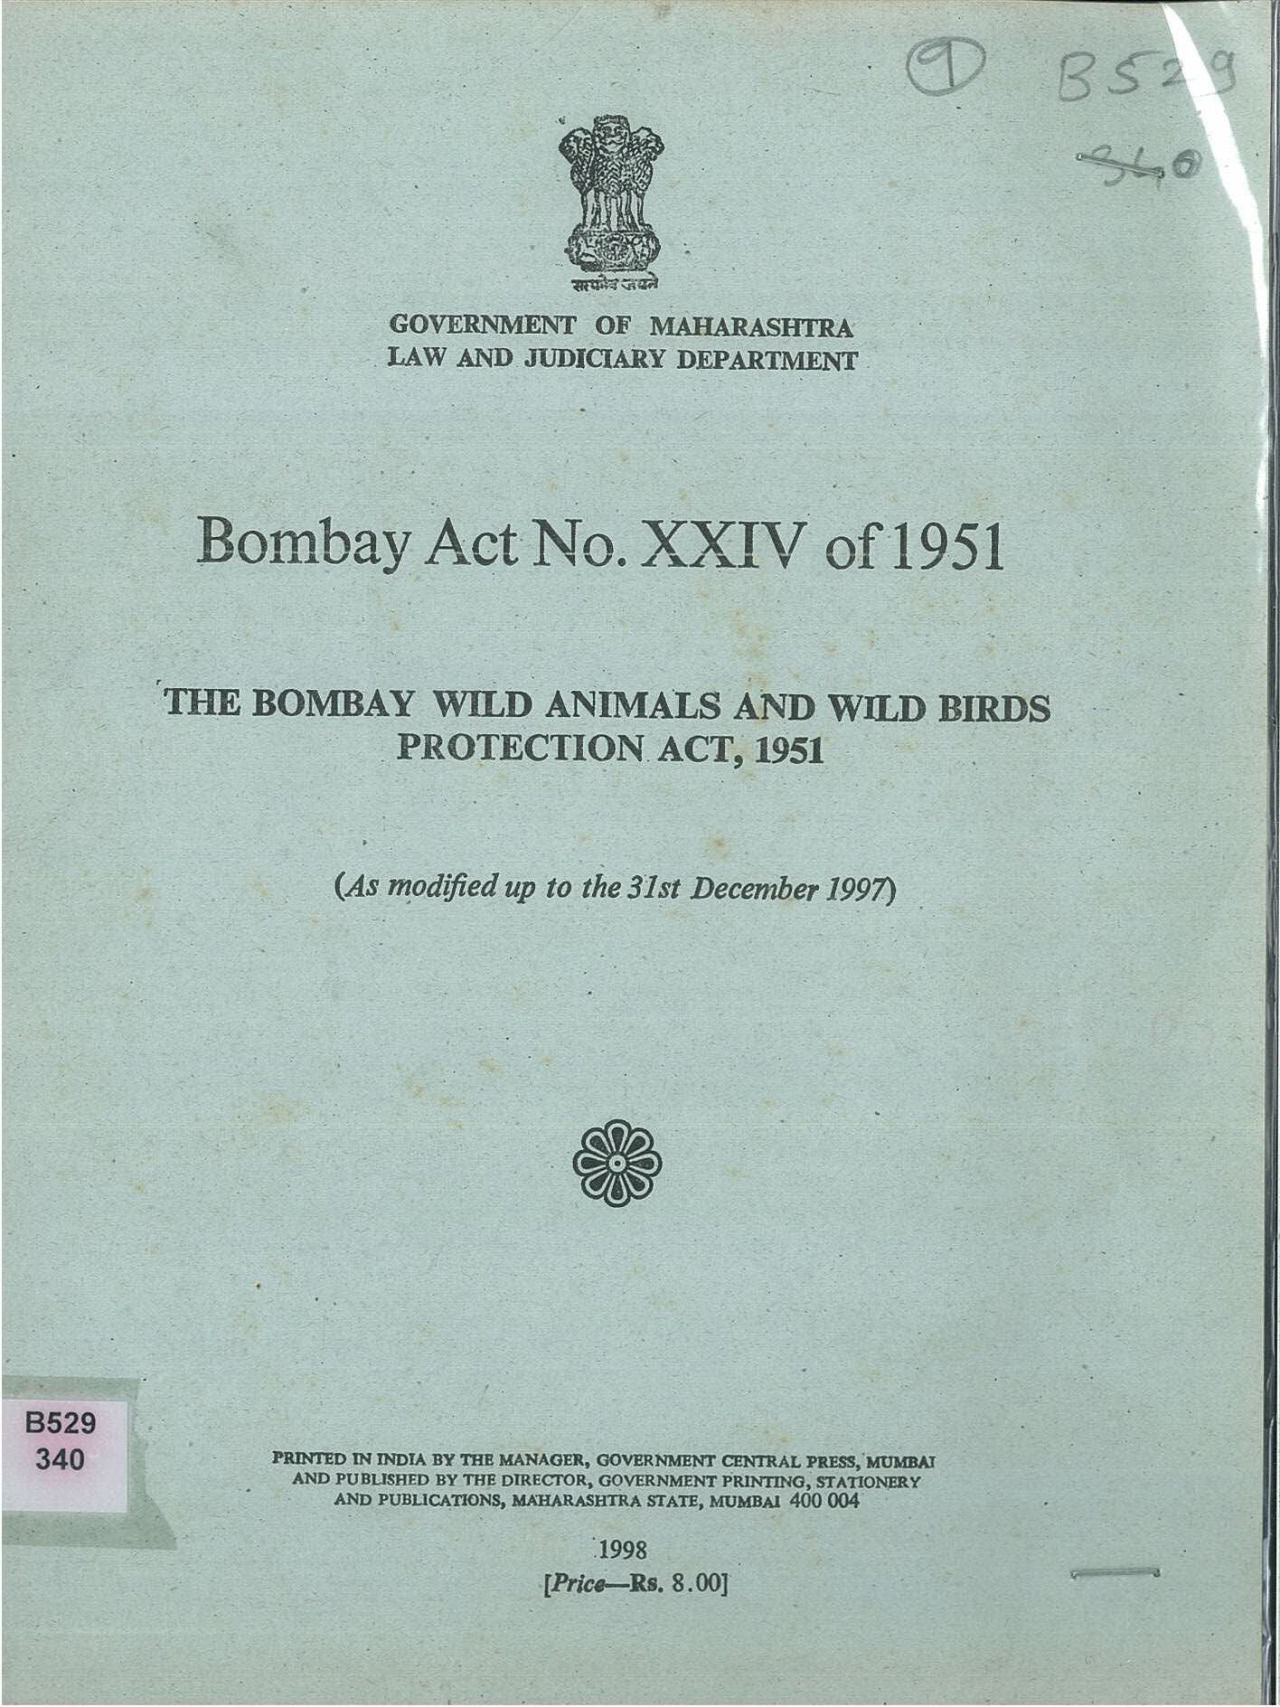 1951 bombay wild animals and wild birds protection act